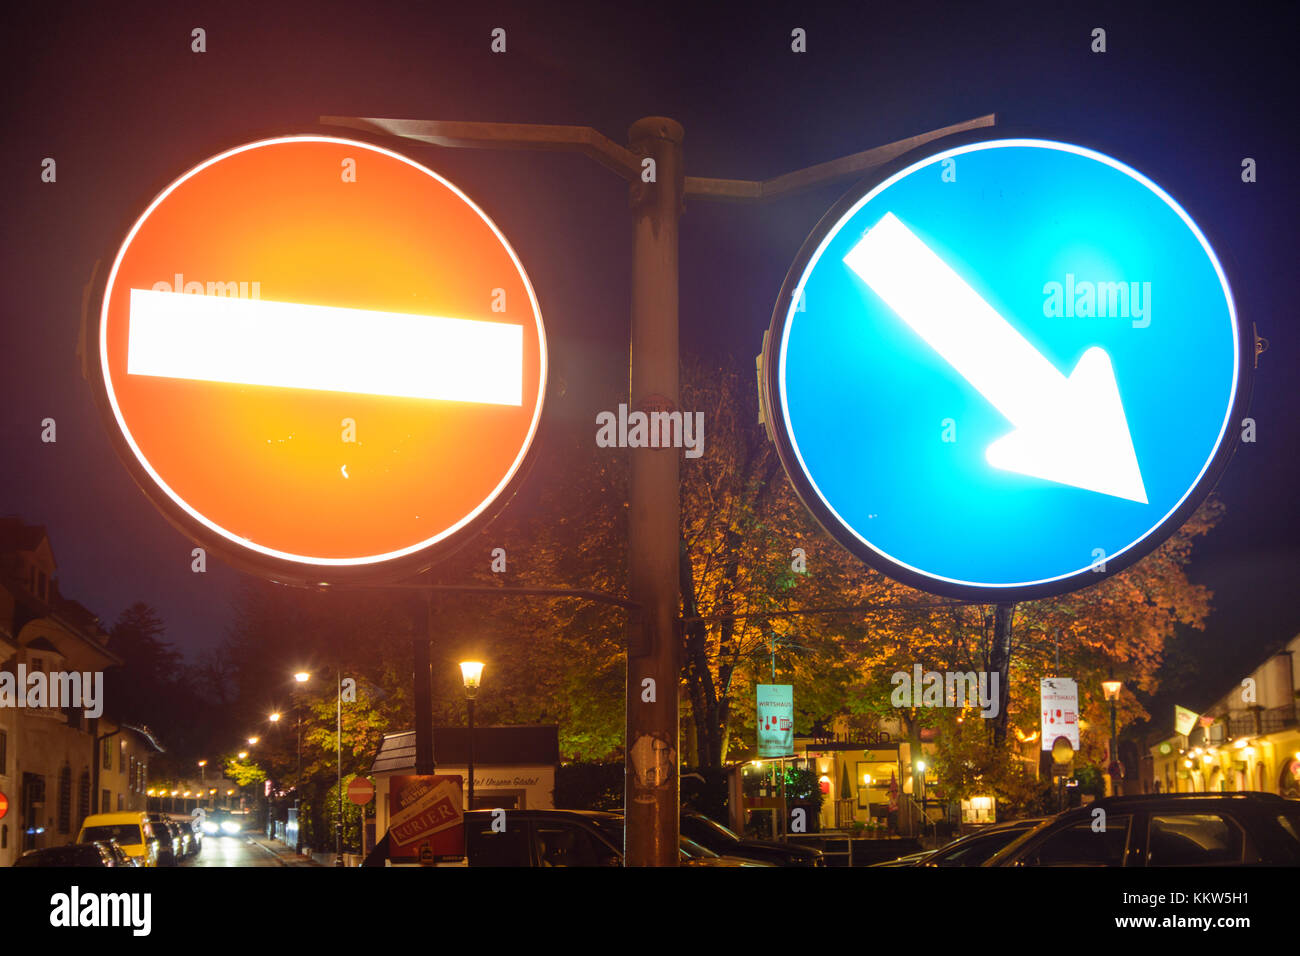 traffic sign one way street and arrow for right direction, Wien, Vienna, 19. Döbling, Wien, Austria - Stock Image